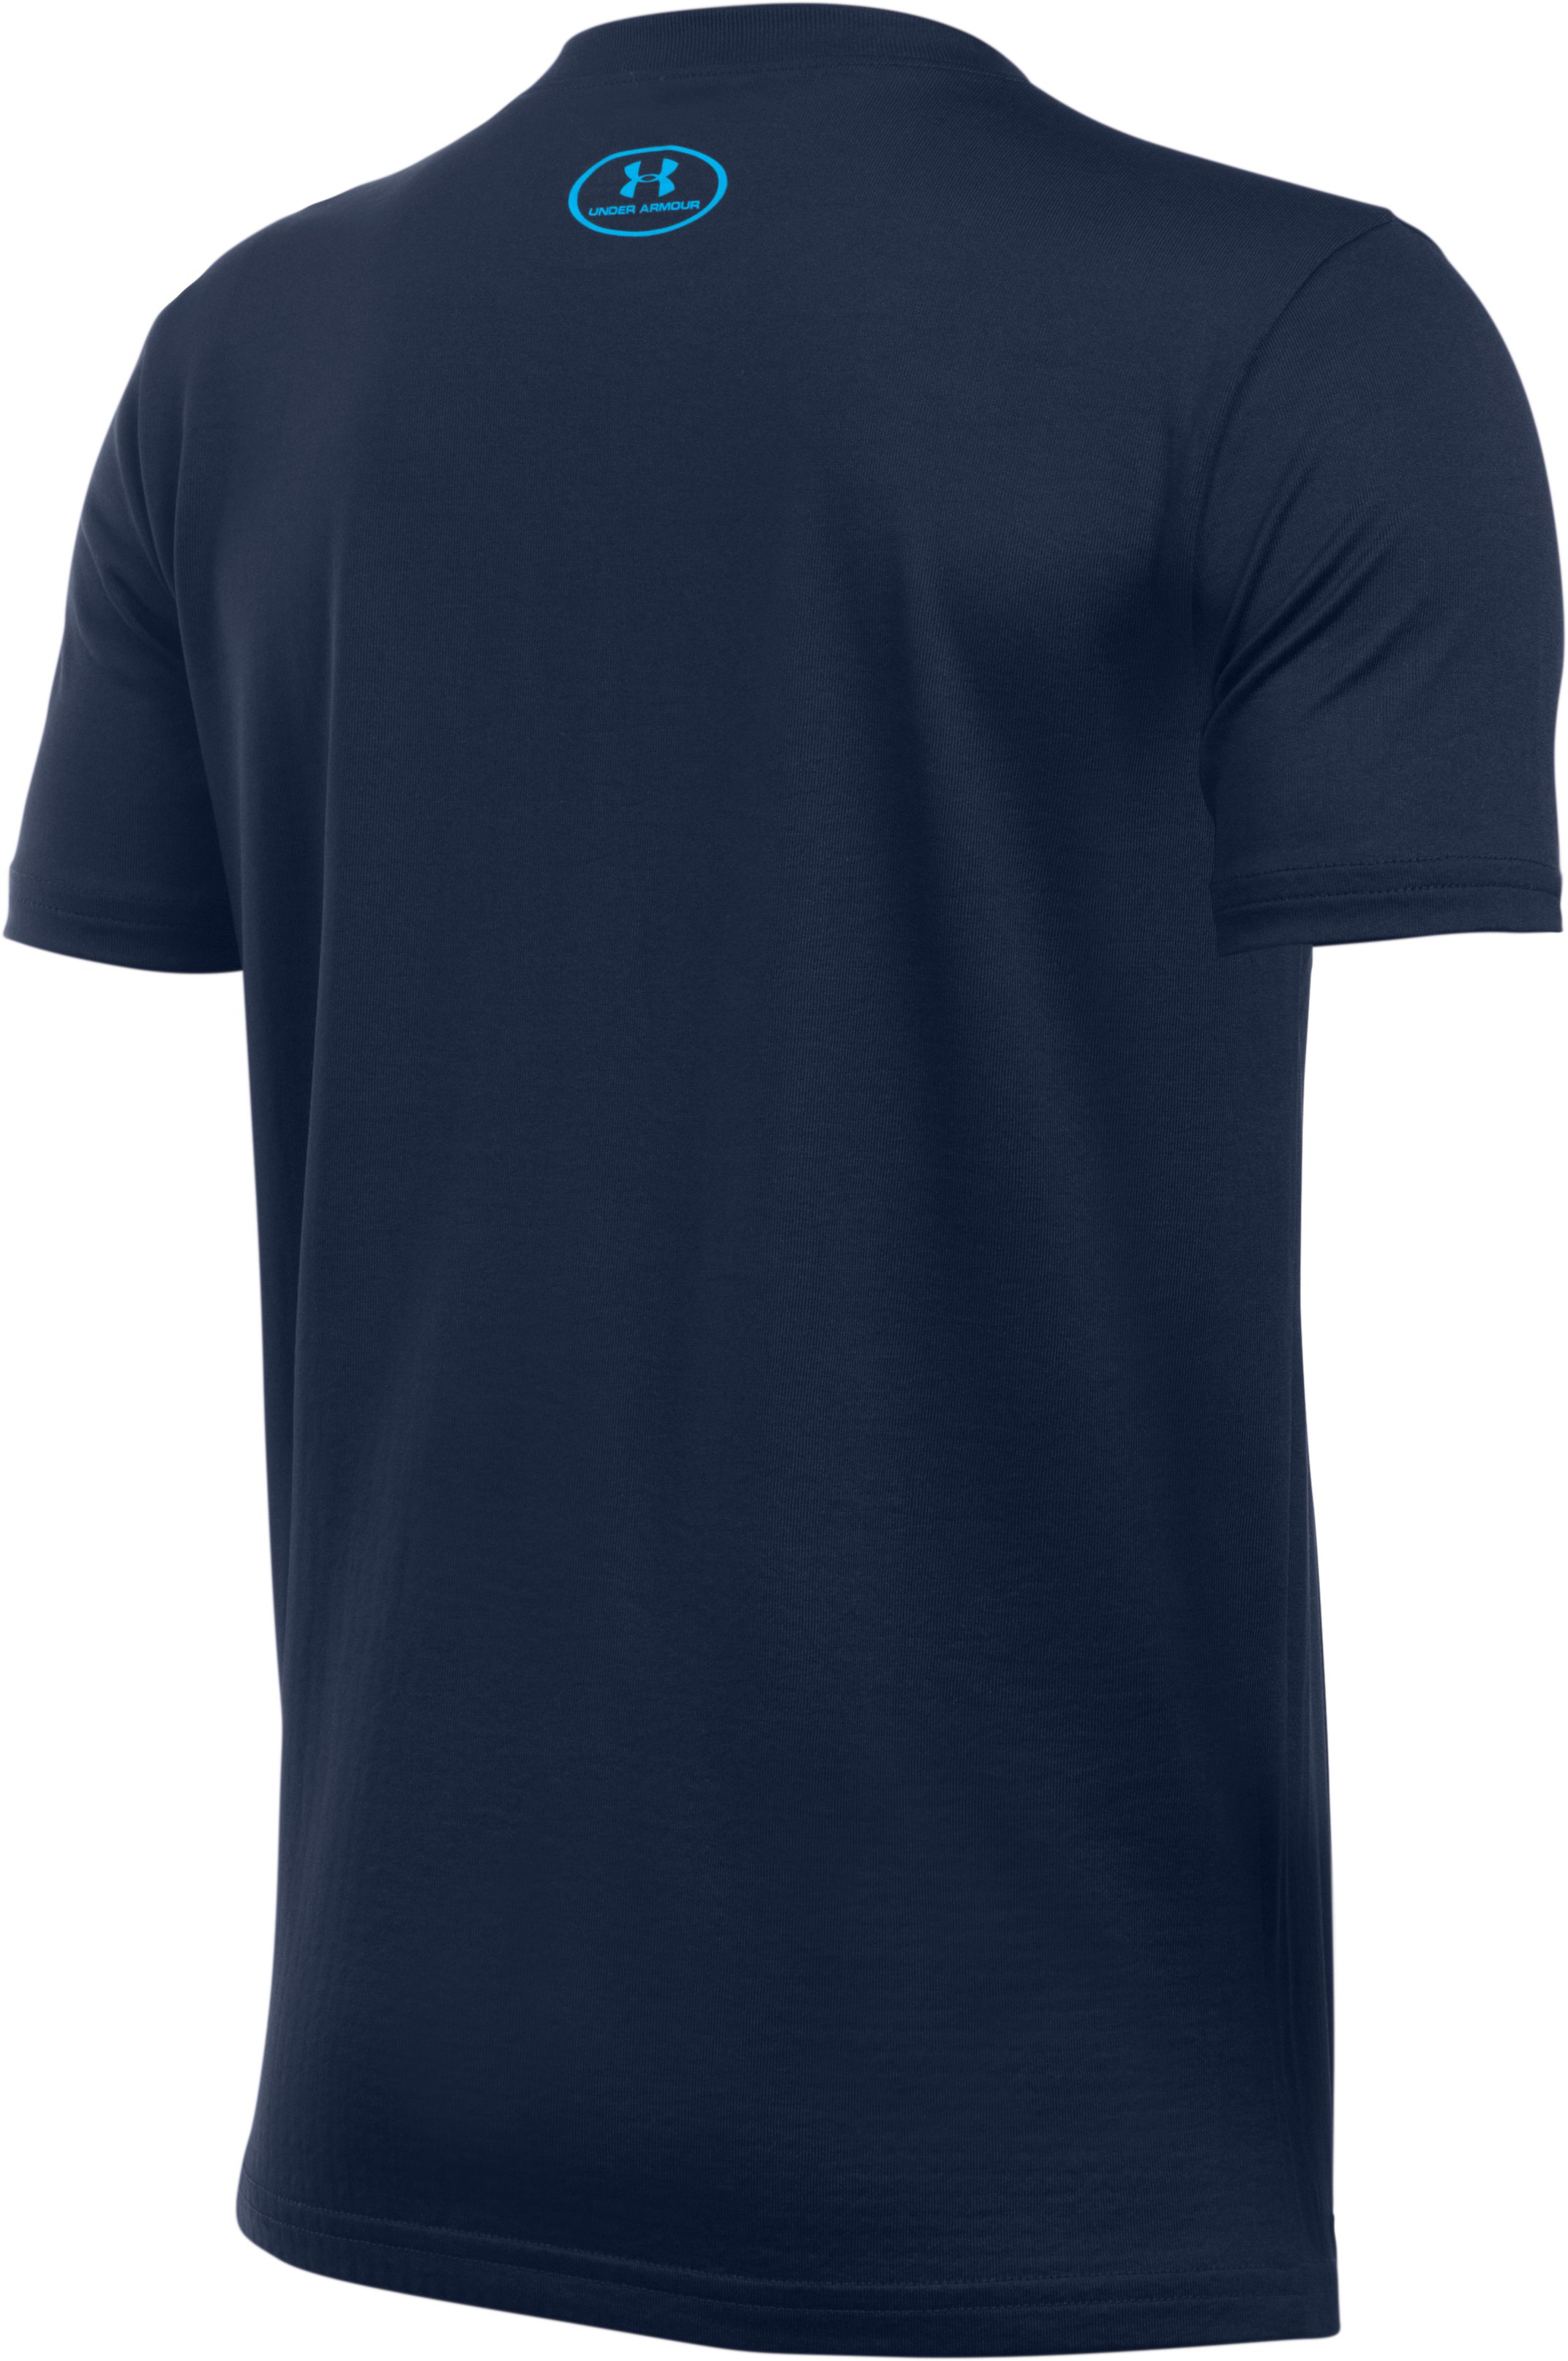 Boys' UA Swing Run Turn T-Shirt, Midnight Navy, undefined